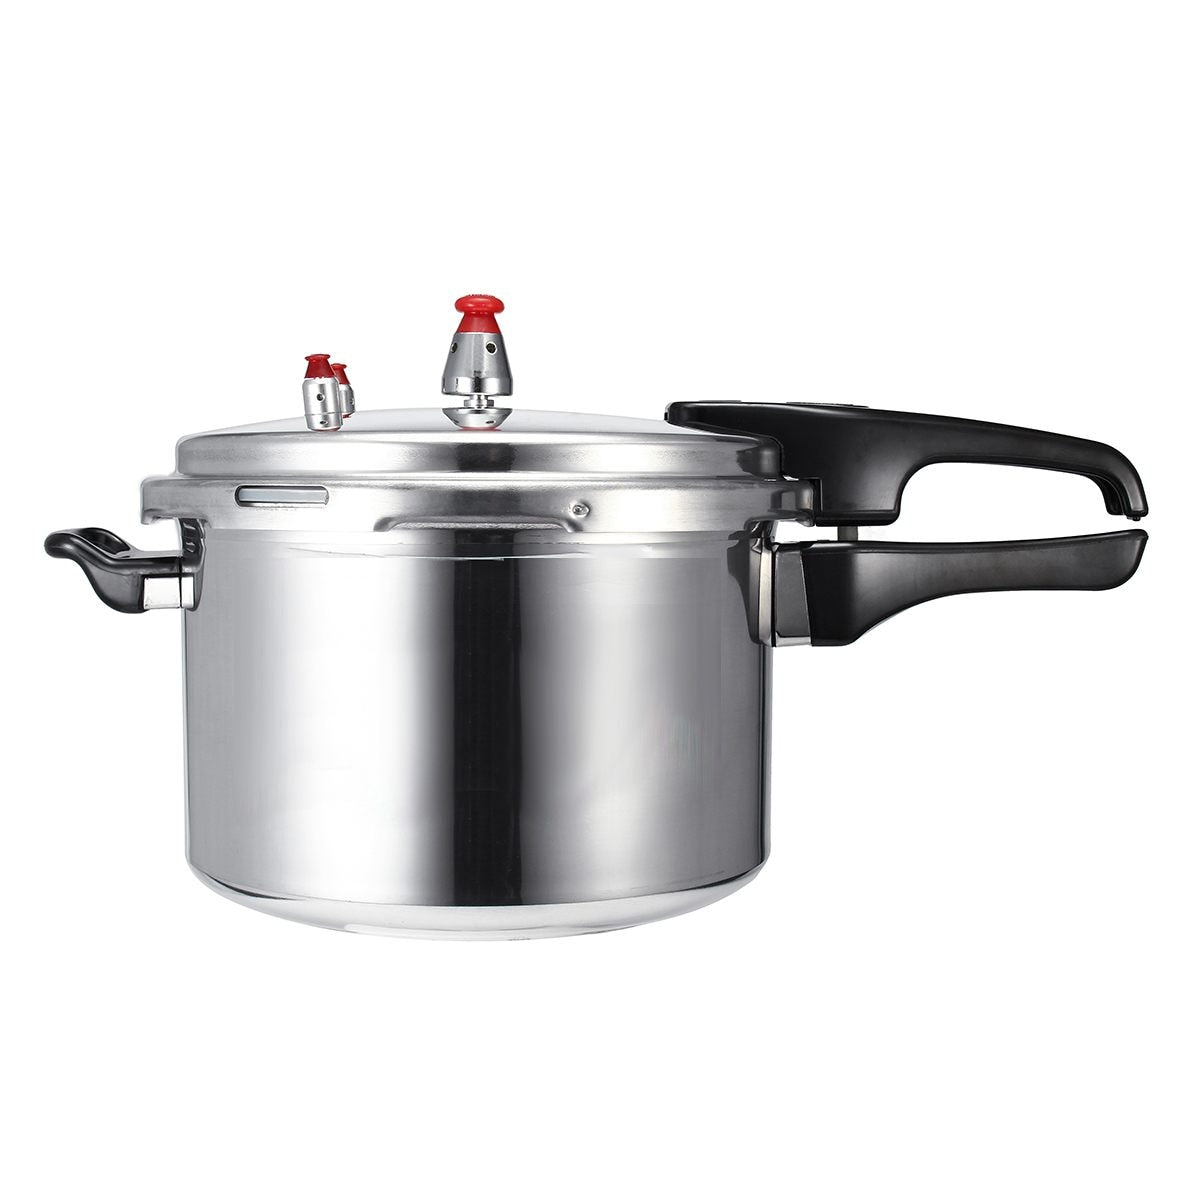 Kitchen Pressure Cooker Soups pot Meats Vegetables foods Cooking Utensils Gas Stove Energy-saving Safety 18/20/22cm 3/4/5L